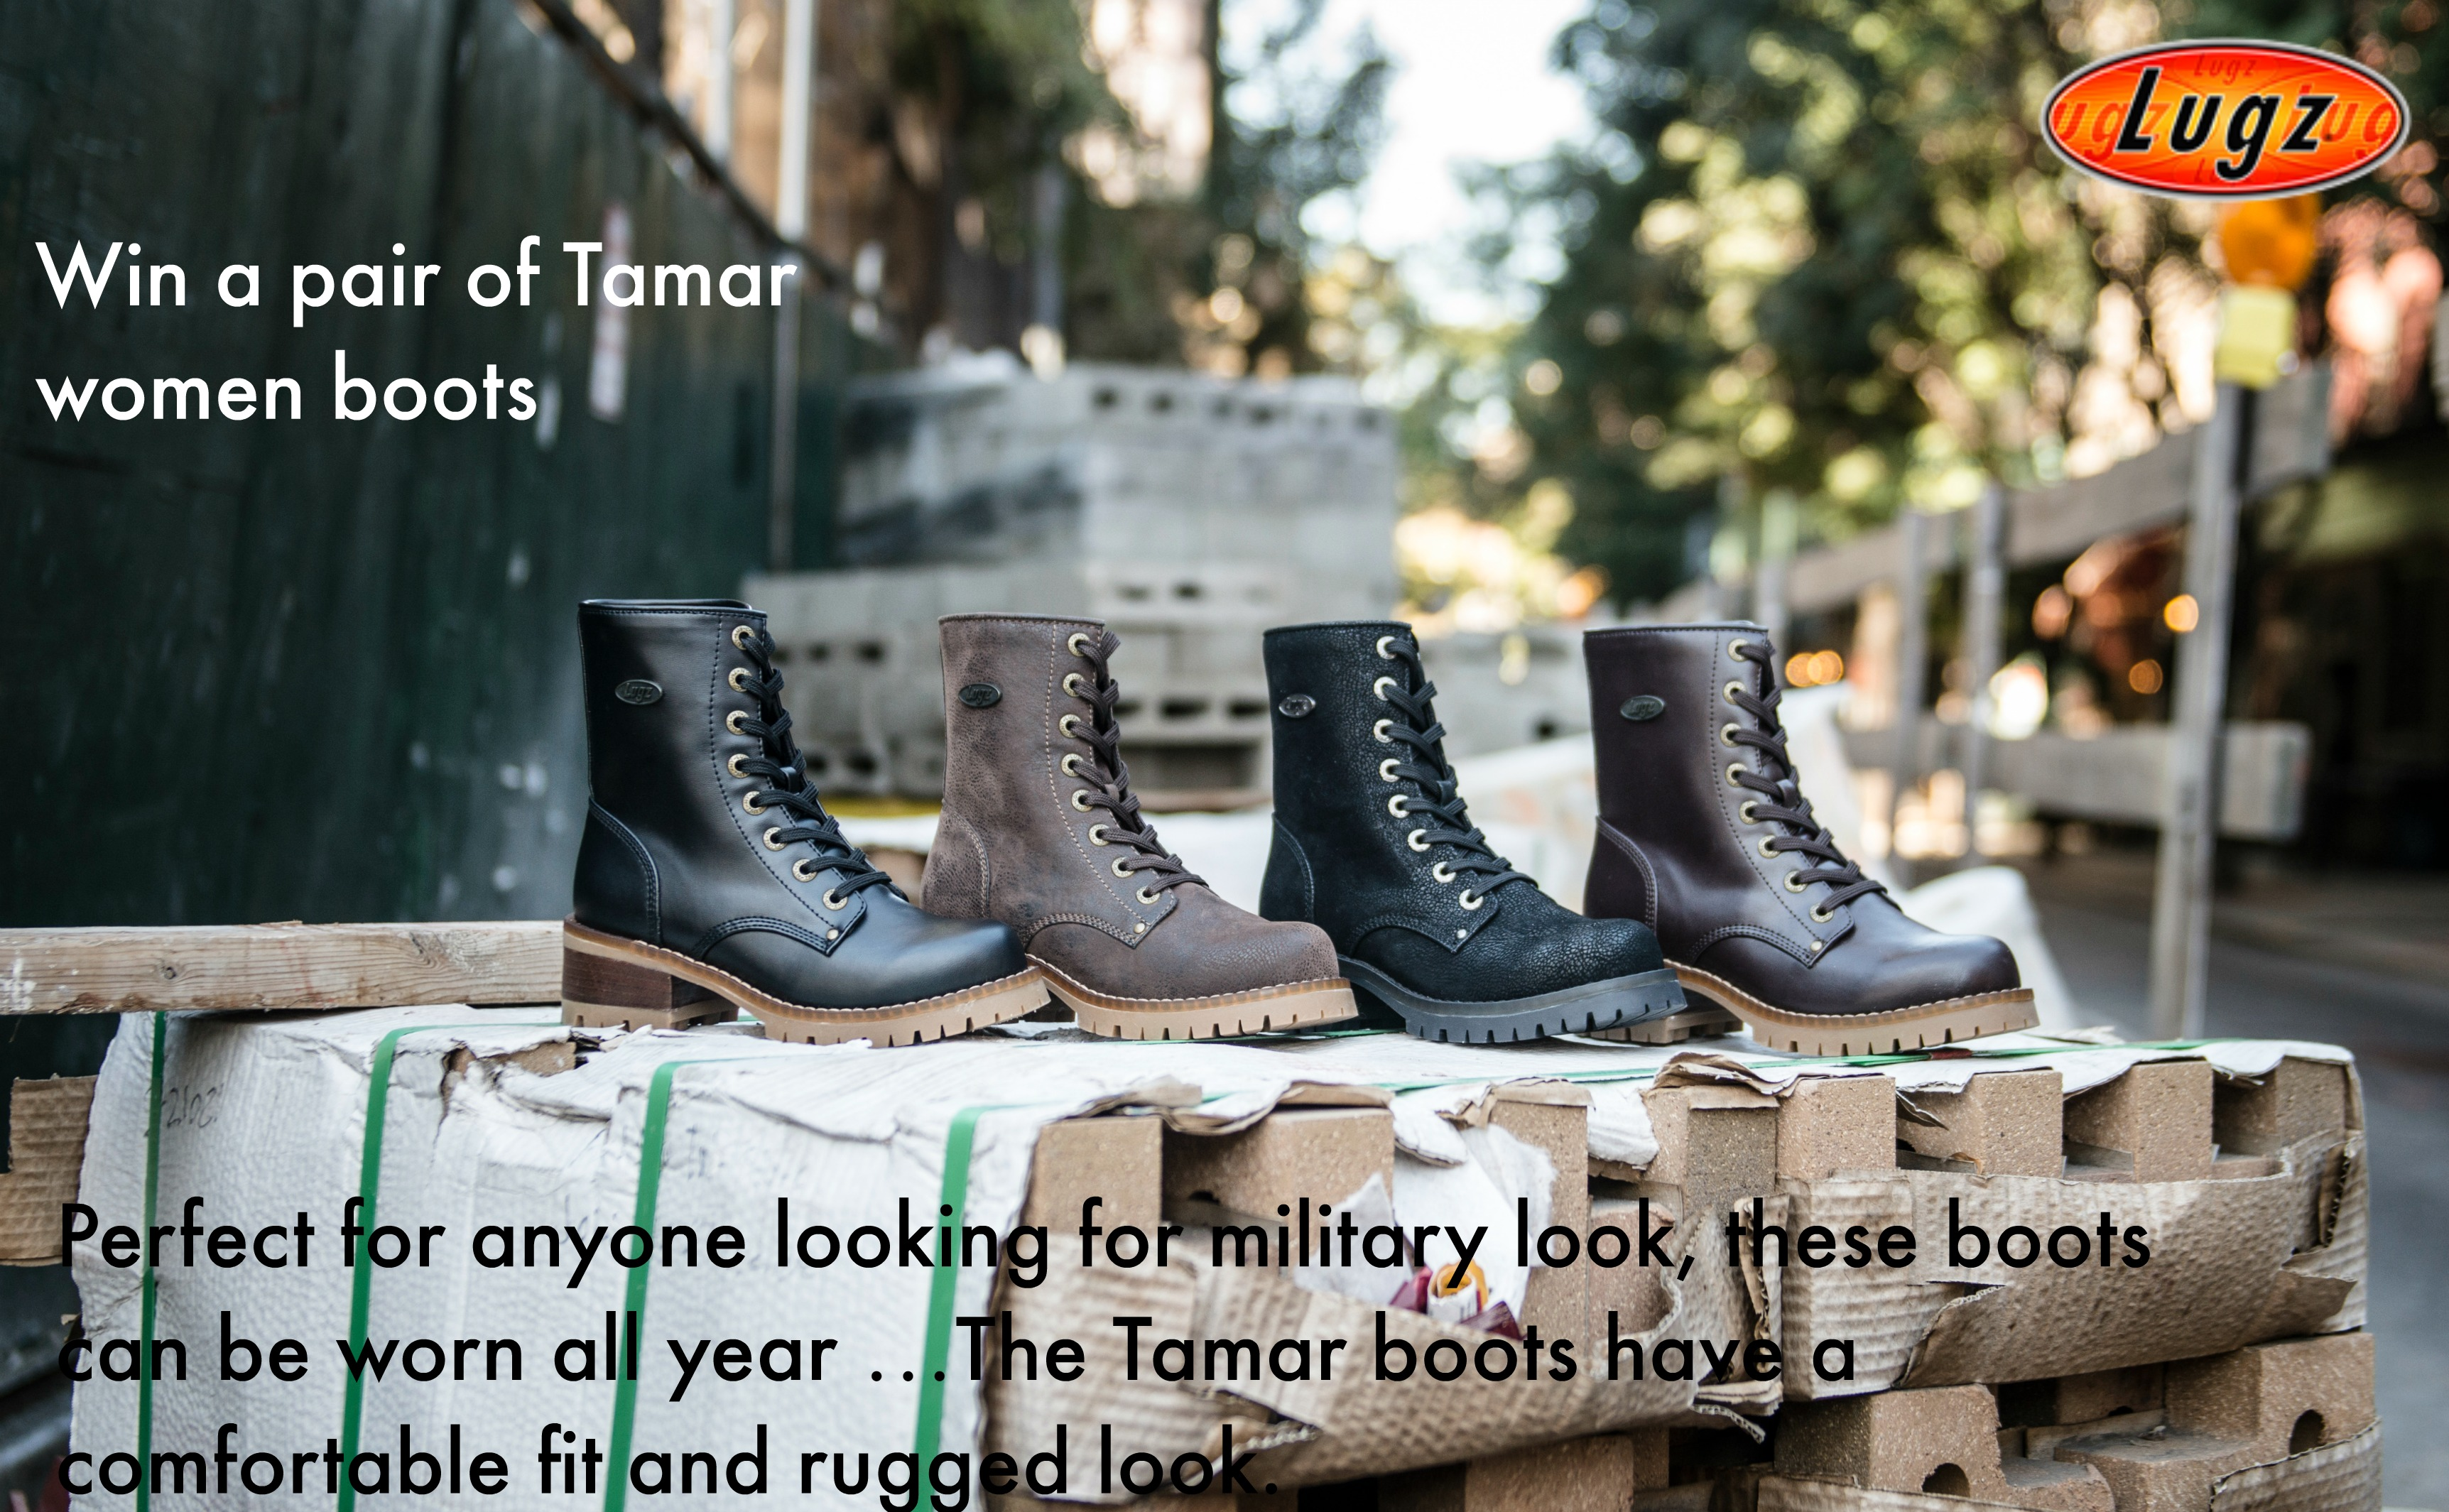 The Lugz Tamar Combat-inspired Boots are Great to Wear All Year Around!